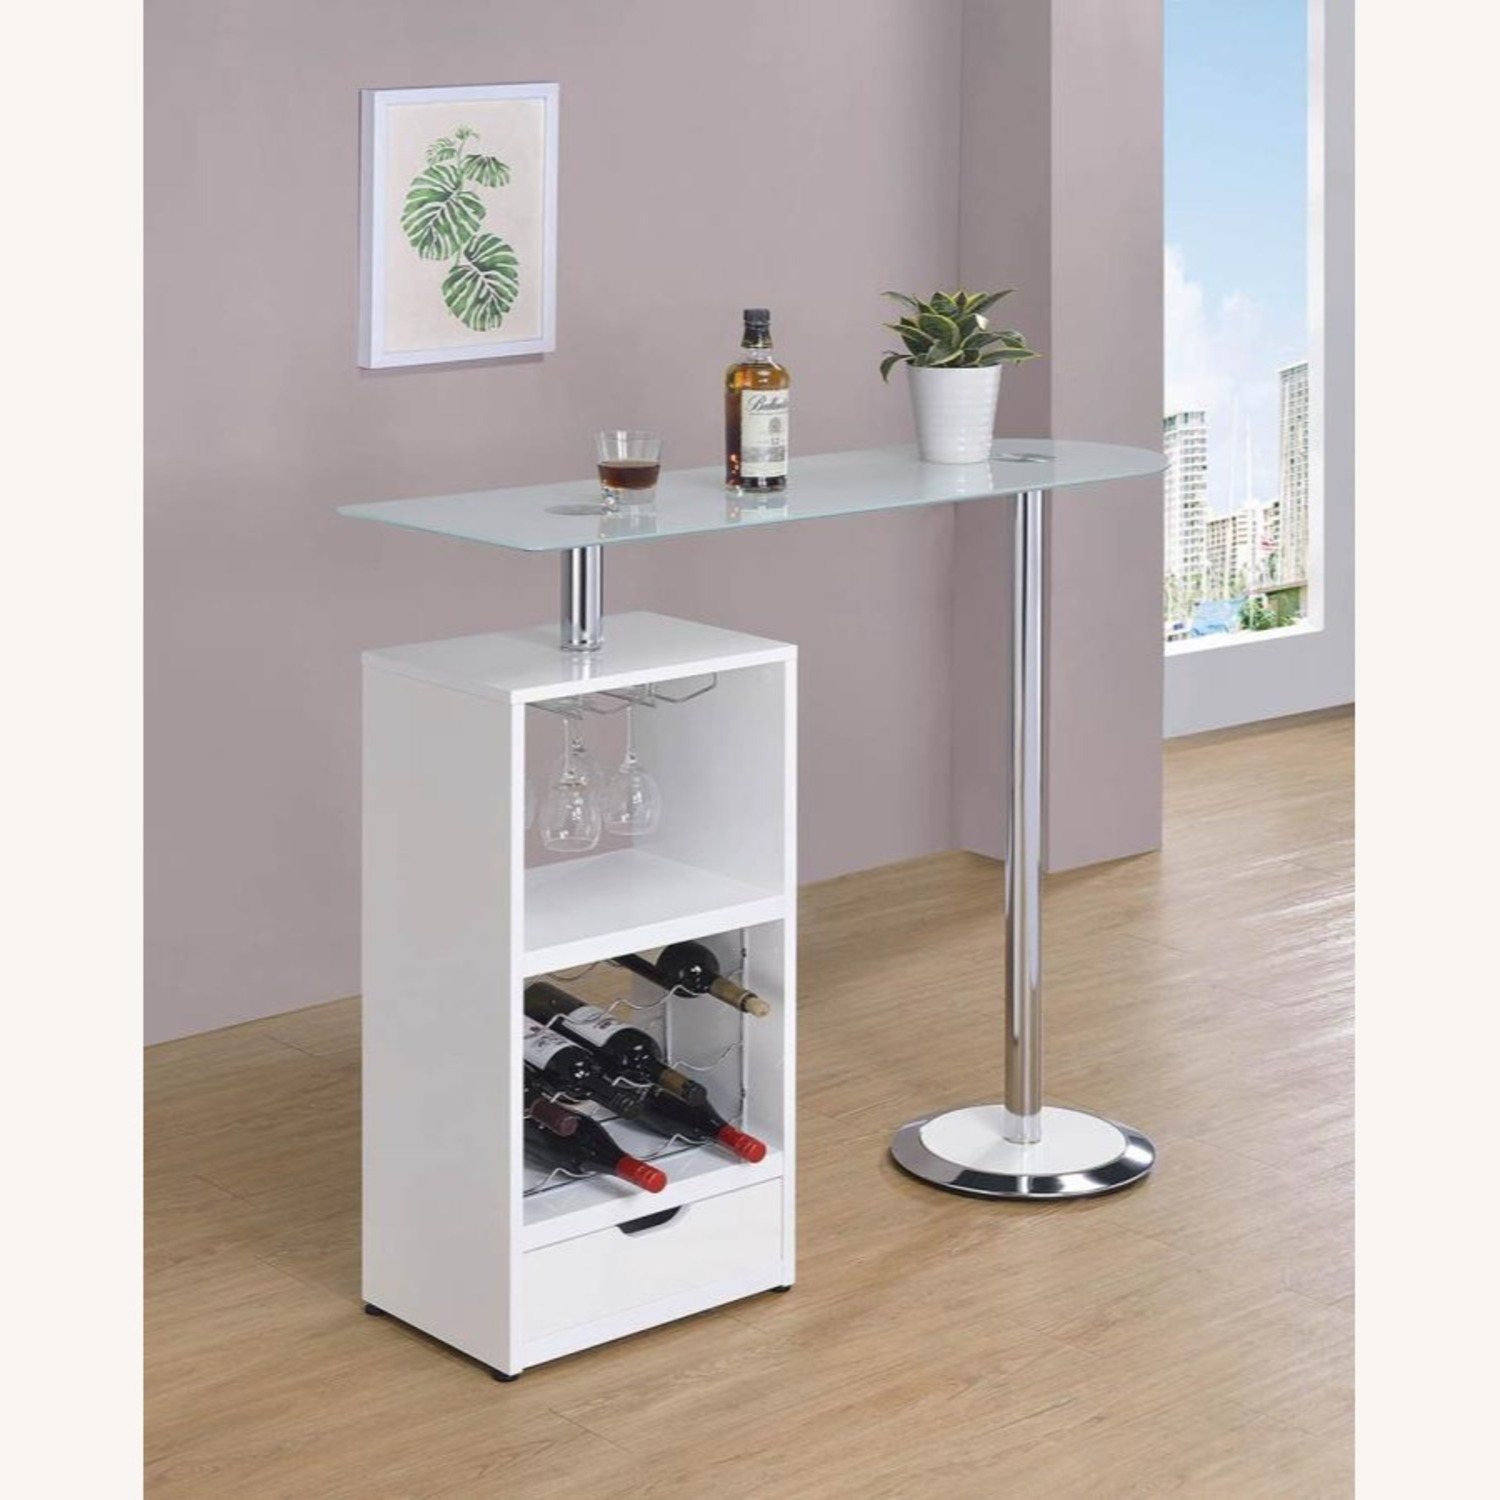 Bar Table In High Gloss White Lacquer Finish - image-5